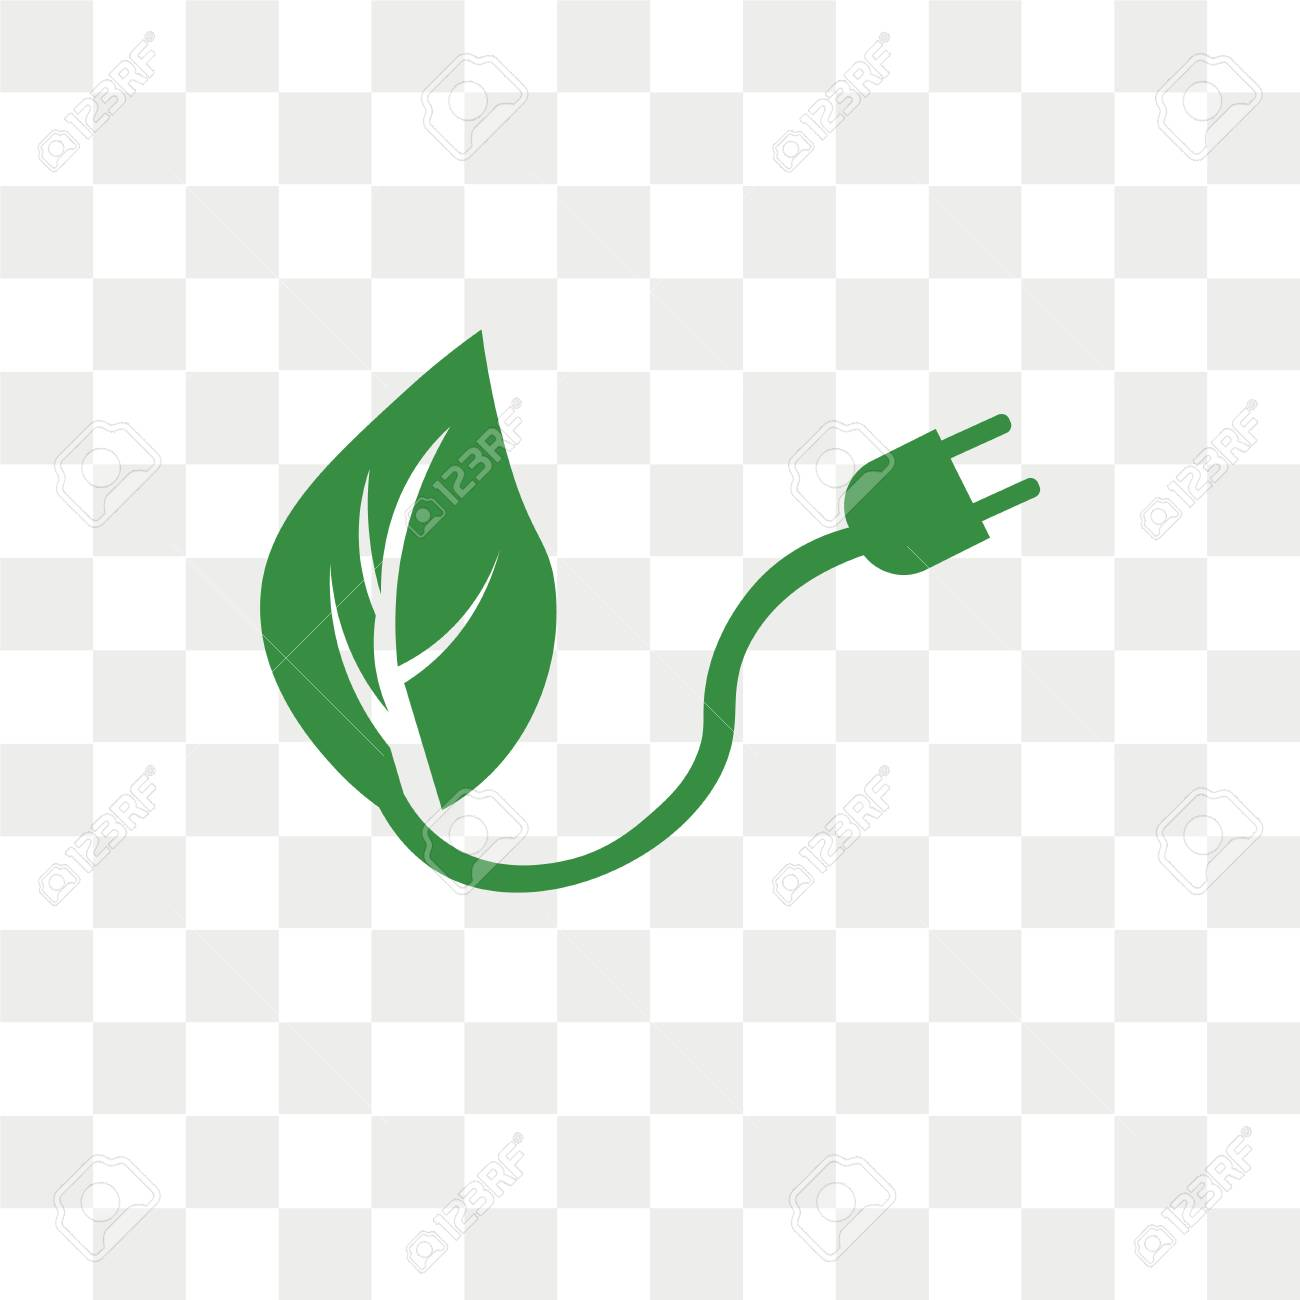 renewable energy vector icon isolated on transparent background royalty free cliparts vectors and stock illustration image 108635345 renewable energy vector icon isolated on transparent background